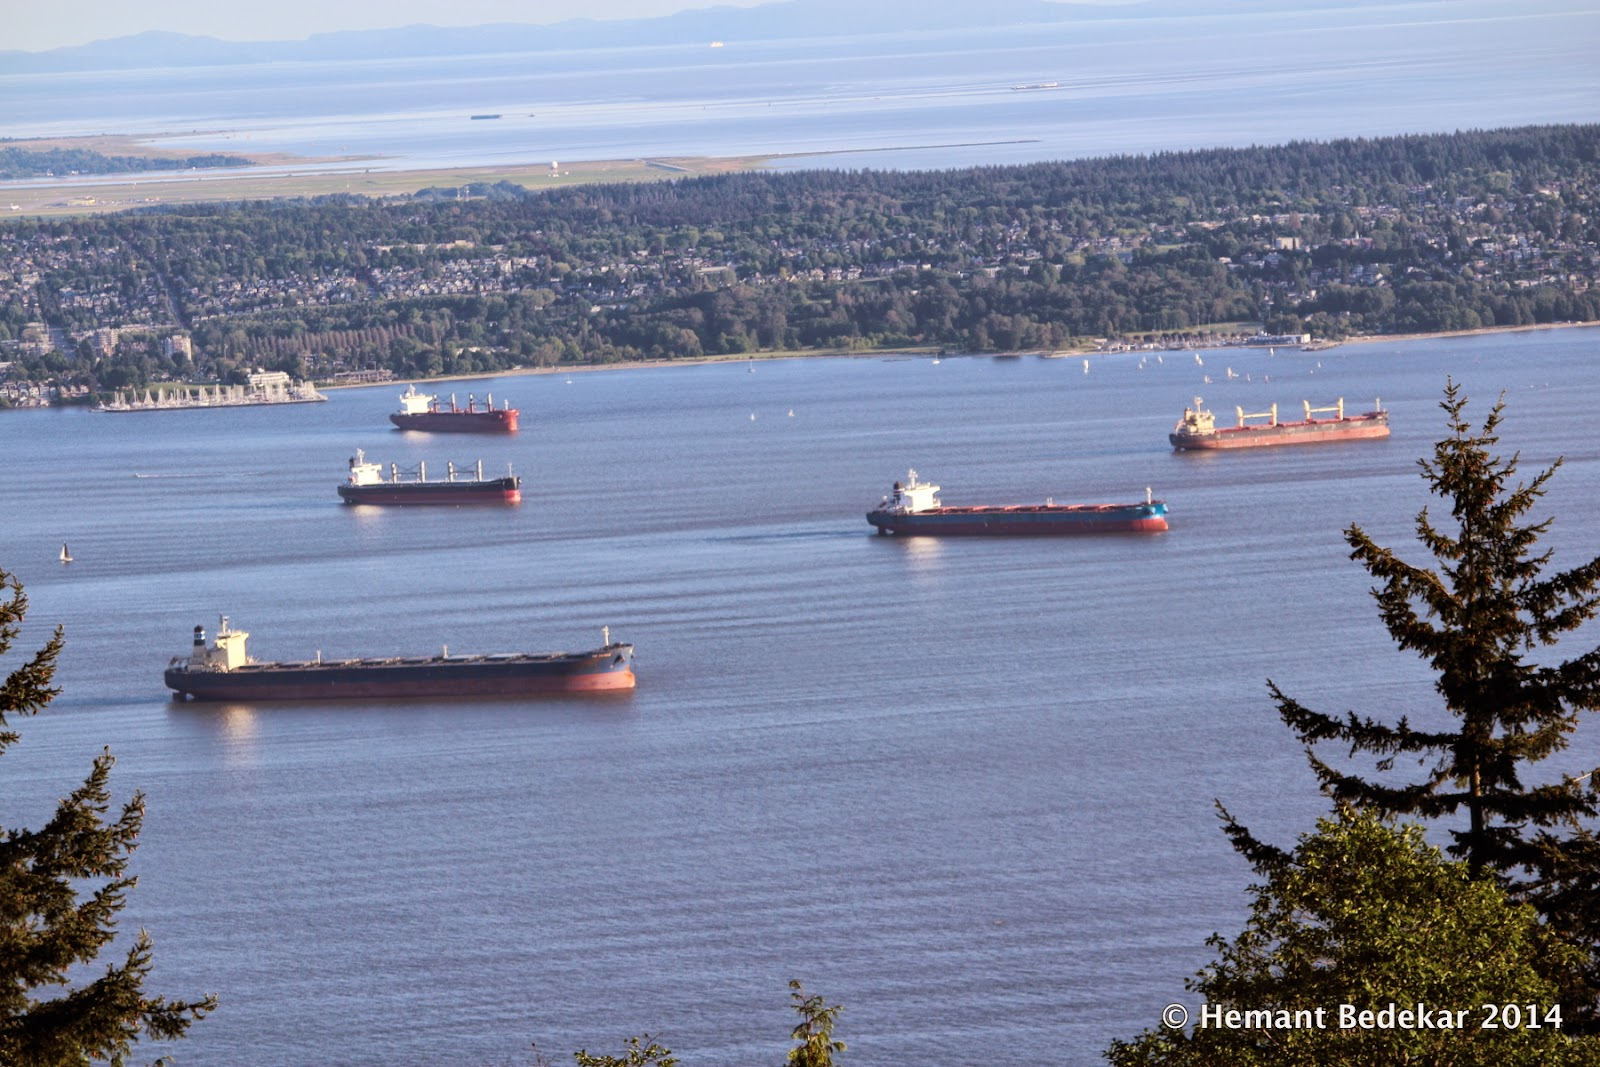 Container ships and vessels waiting for their turn to dock into the port of Vancouver